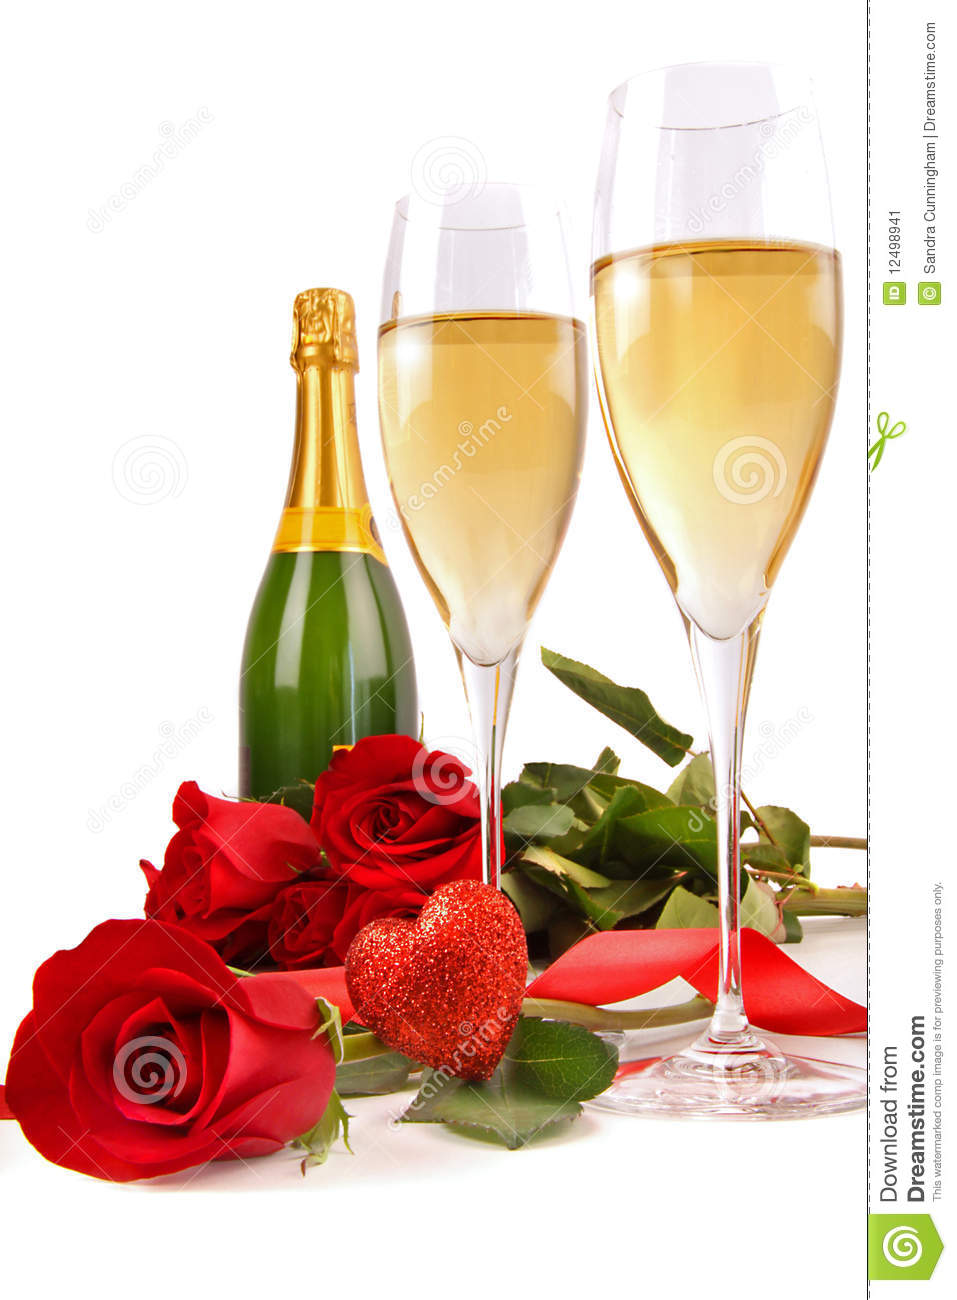 Champagne Glasses With Red Roses And Little Heart Stock Image - Image ...